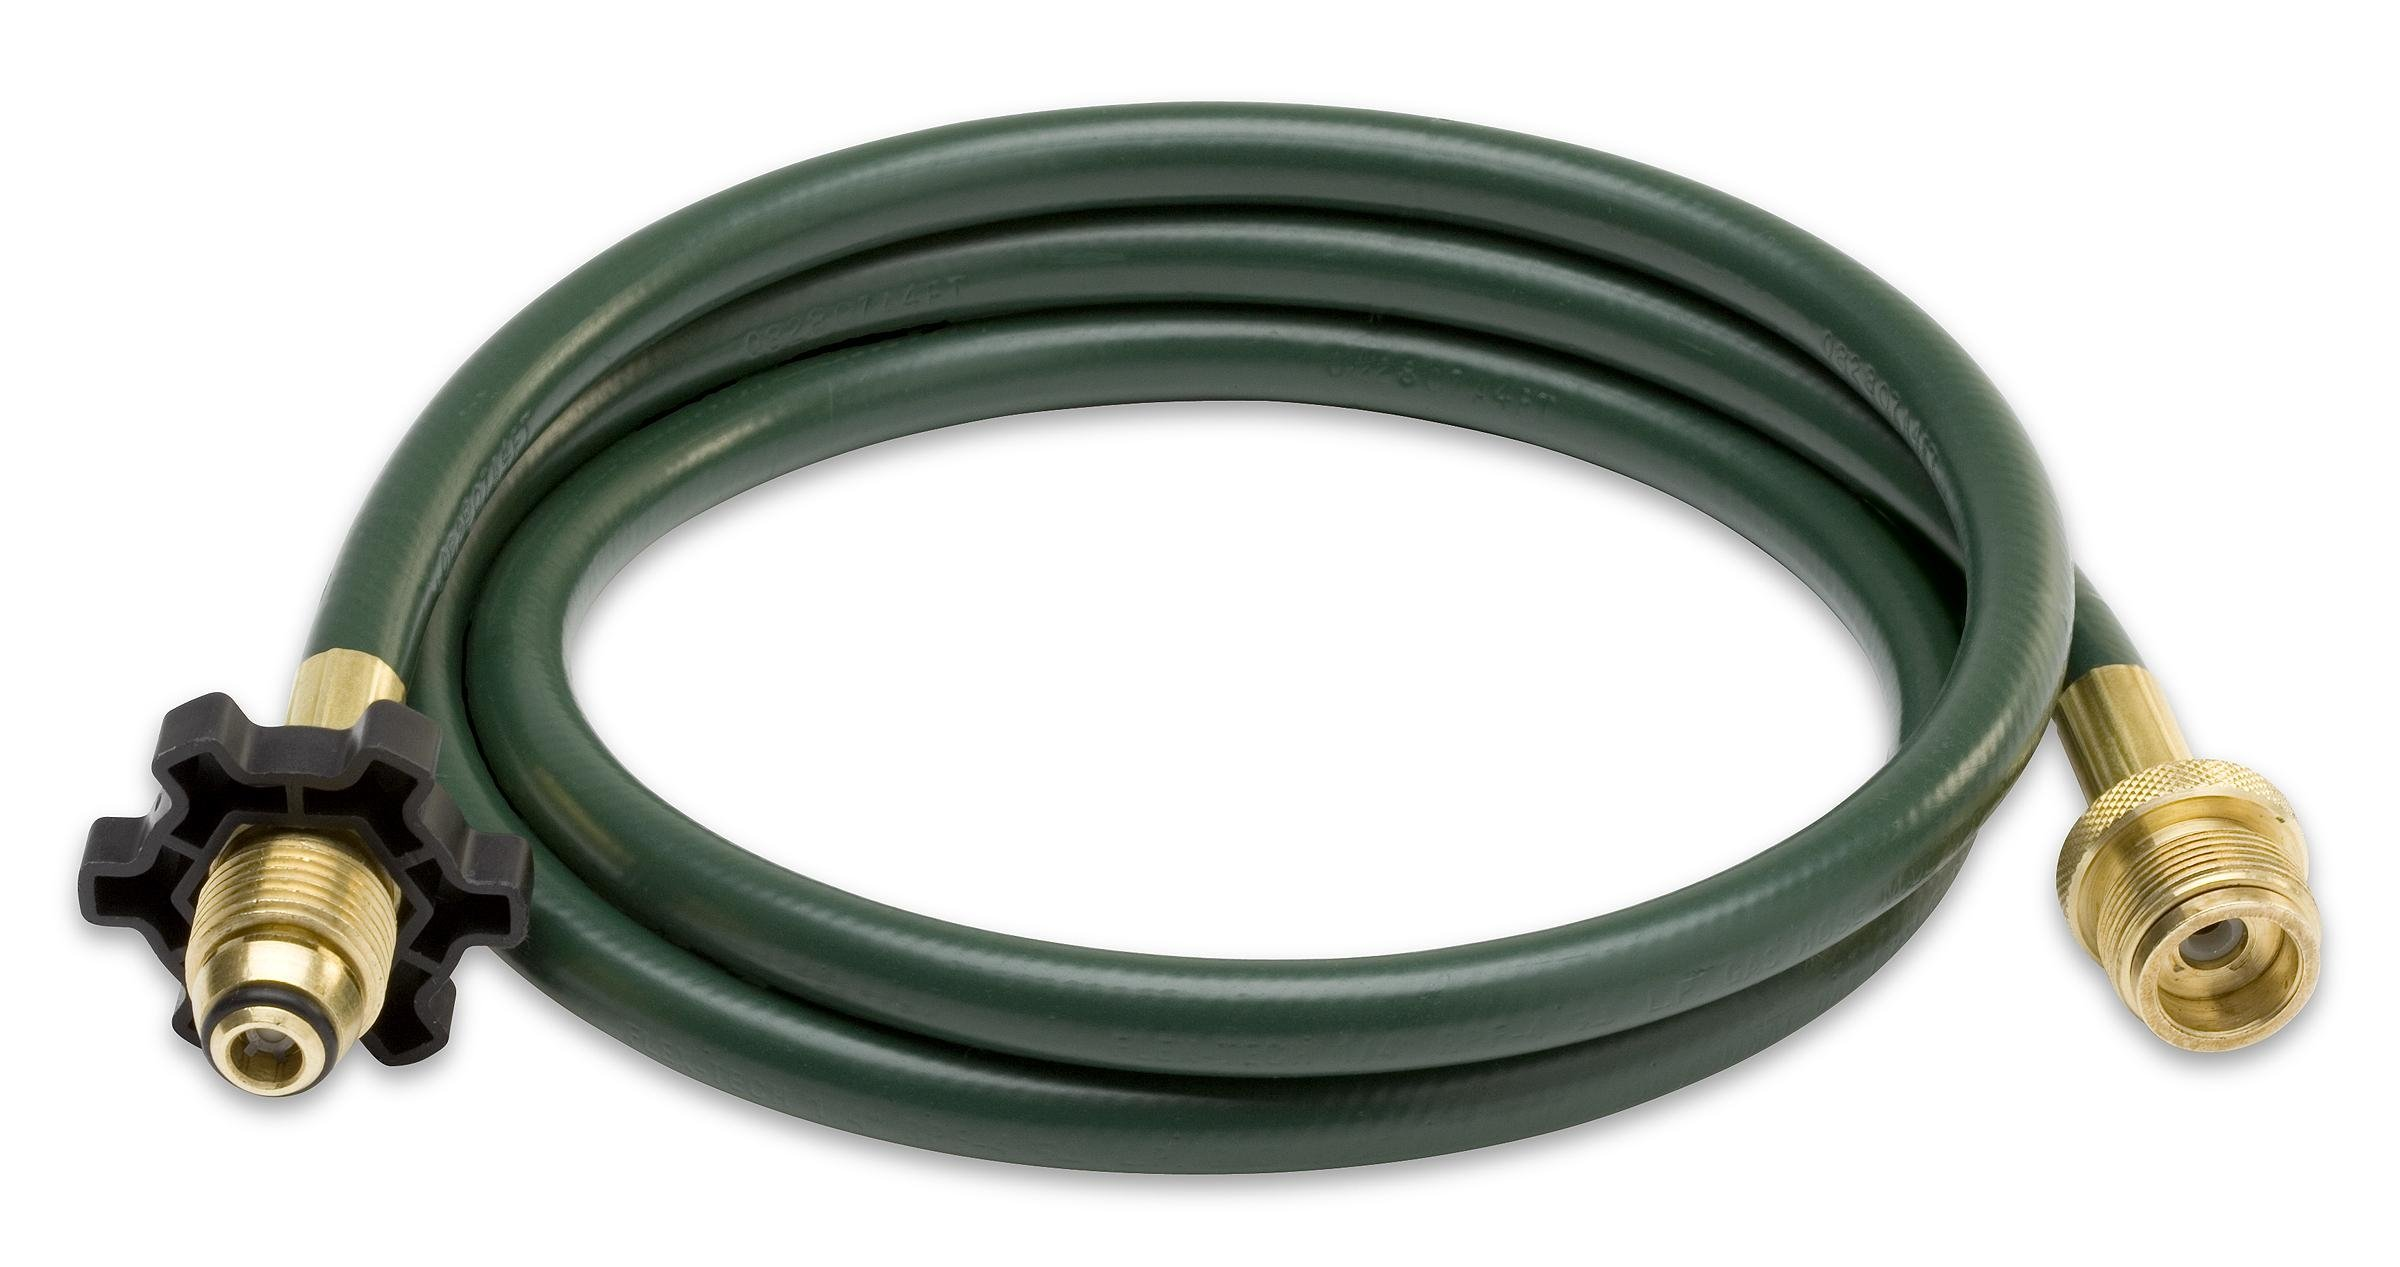 Mr. Heater Buddy Series Hose Assembly - 10-ft., Model# F273704 by Mr. Heater